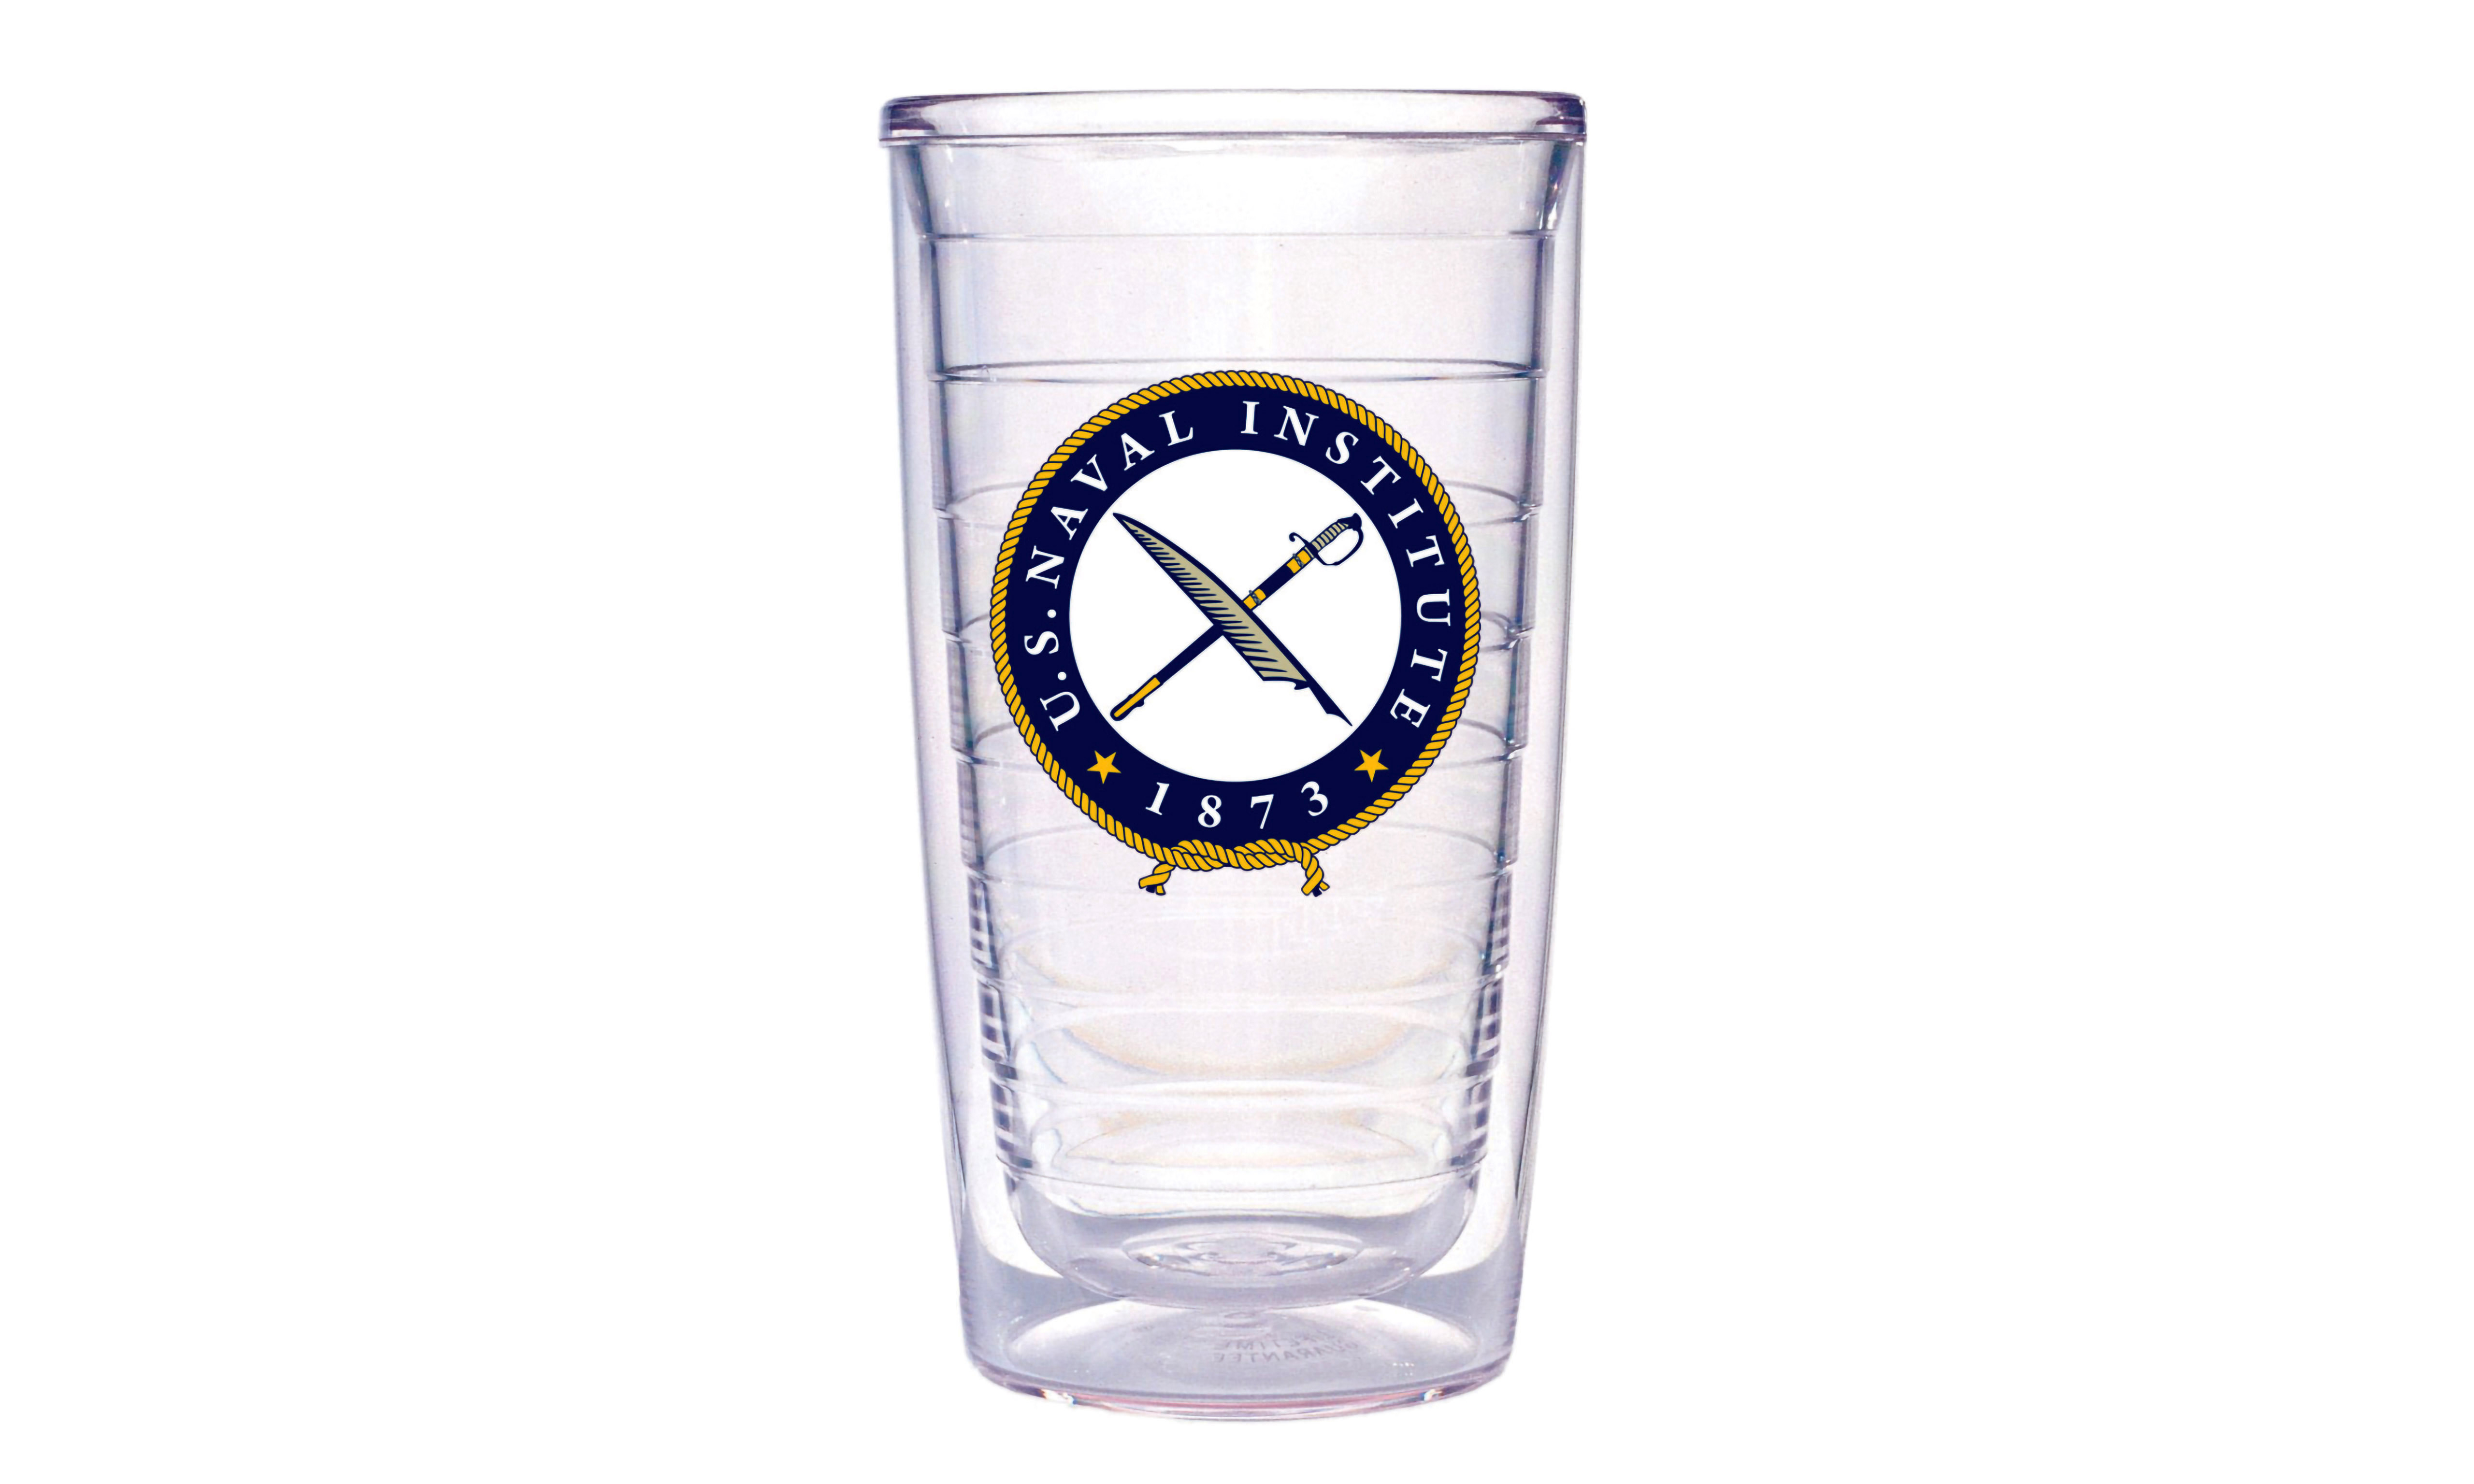 U.S. Naval Institute Tervis Tumbler Front View